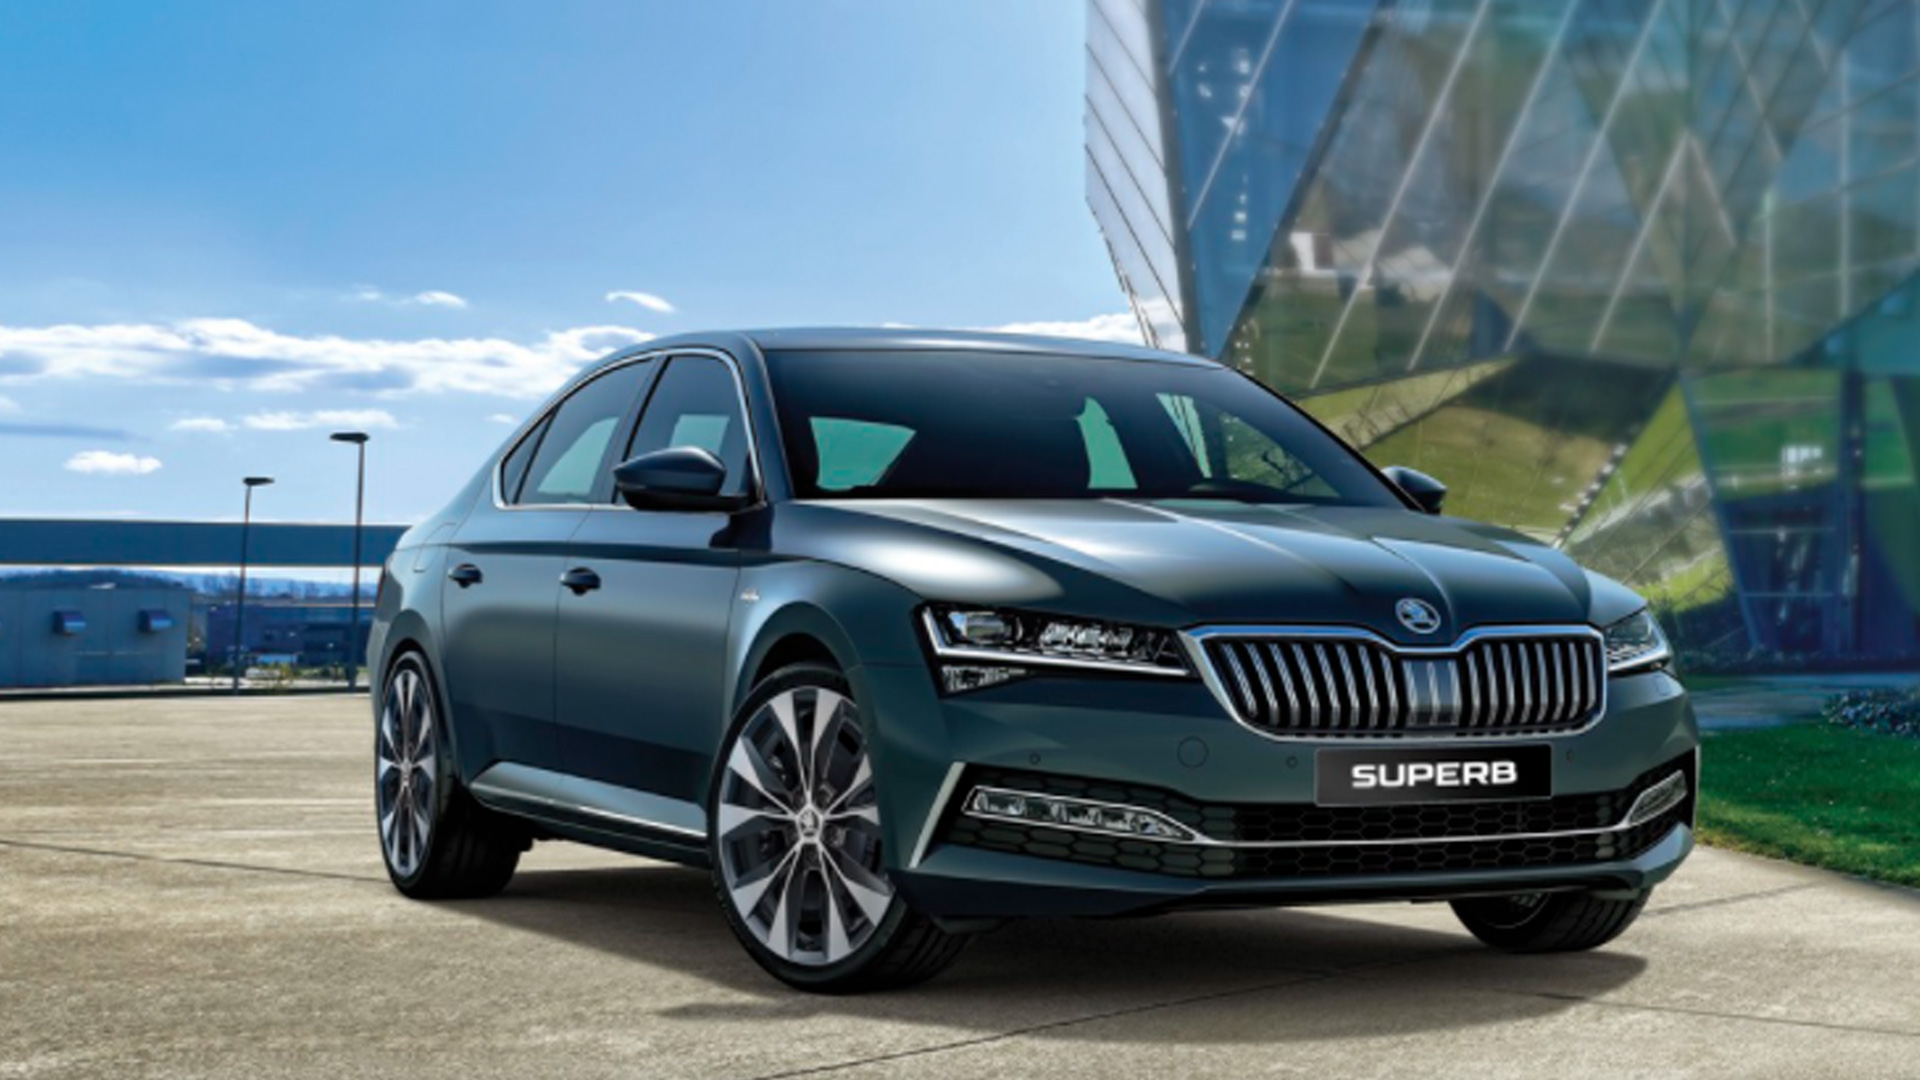 Skoda Superb 2021 2.0 TSI (AT) L & K Exterior